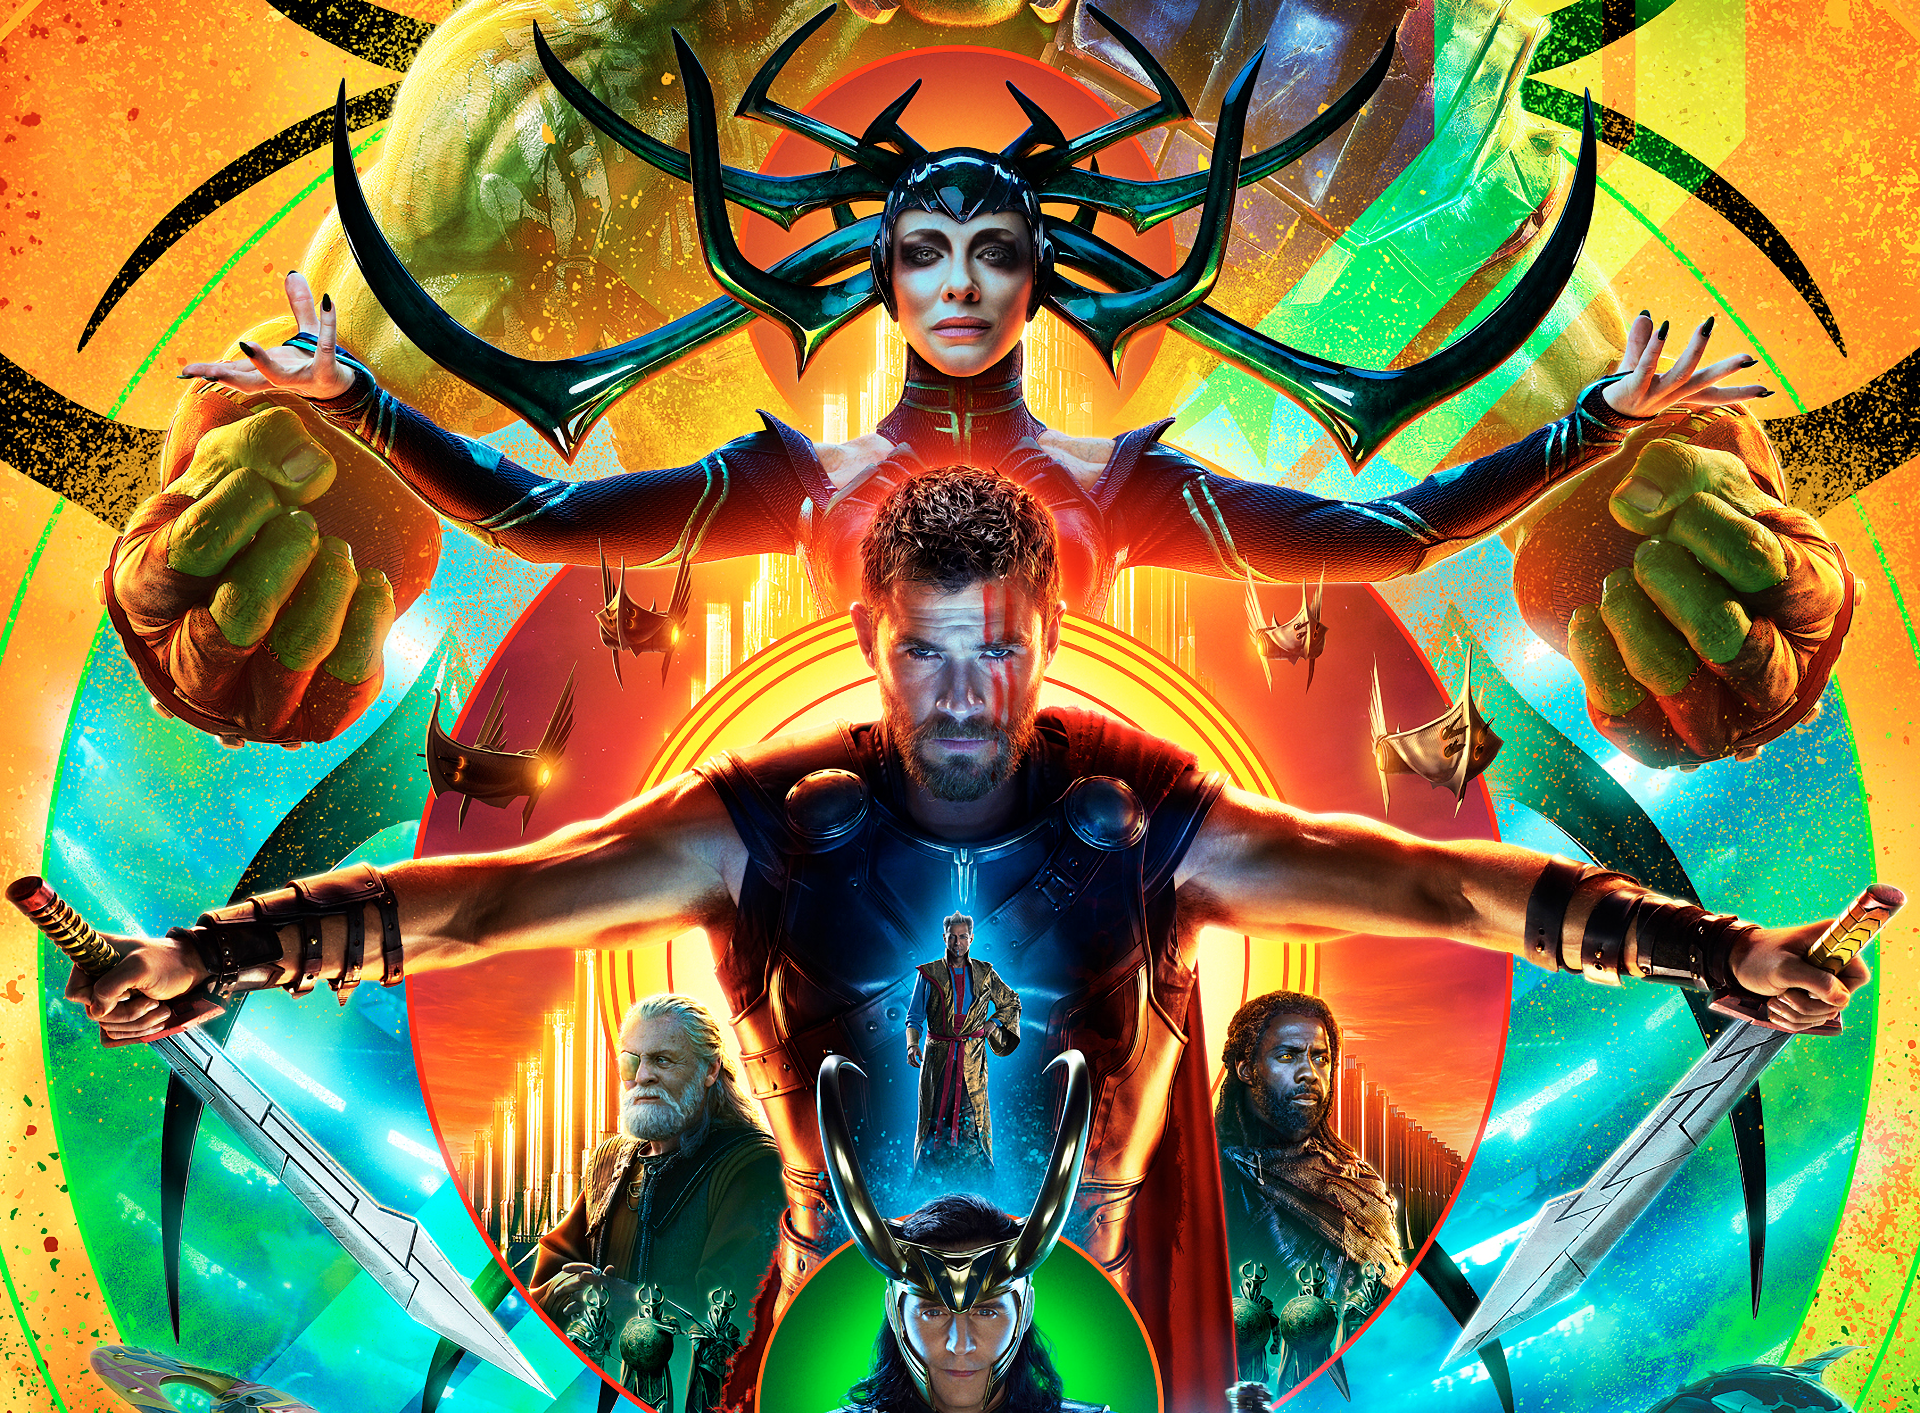 35 Best Thor Ragnarok Wallpapers For Pc And Smartphones Templatefor